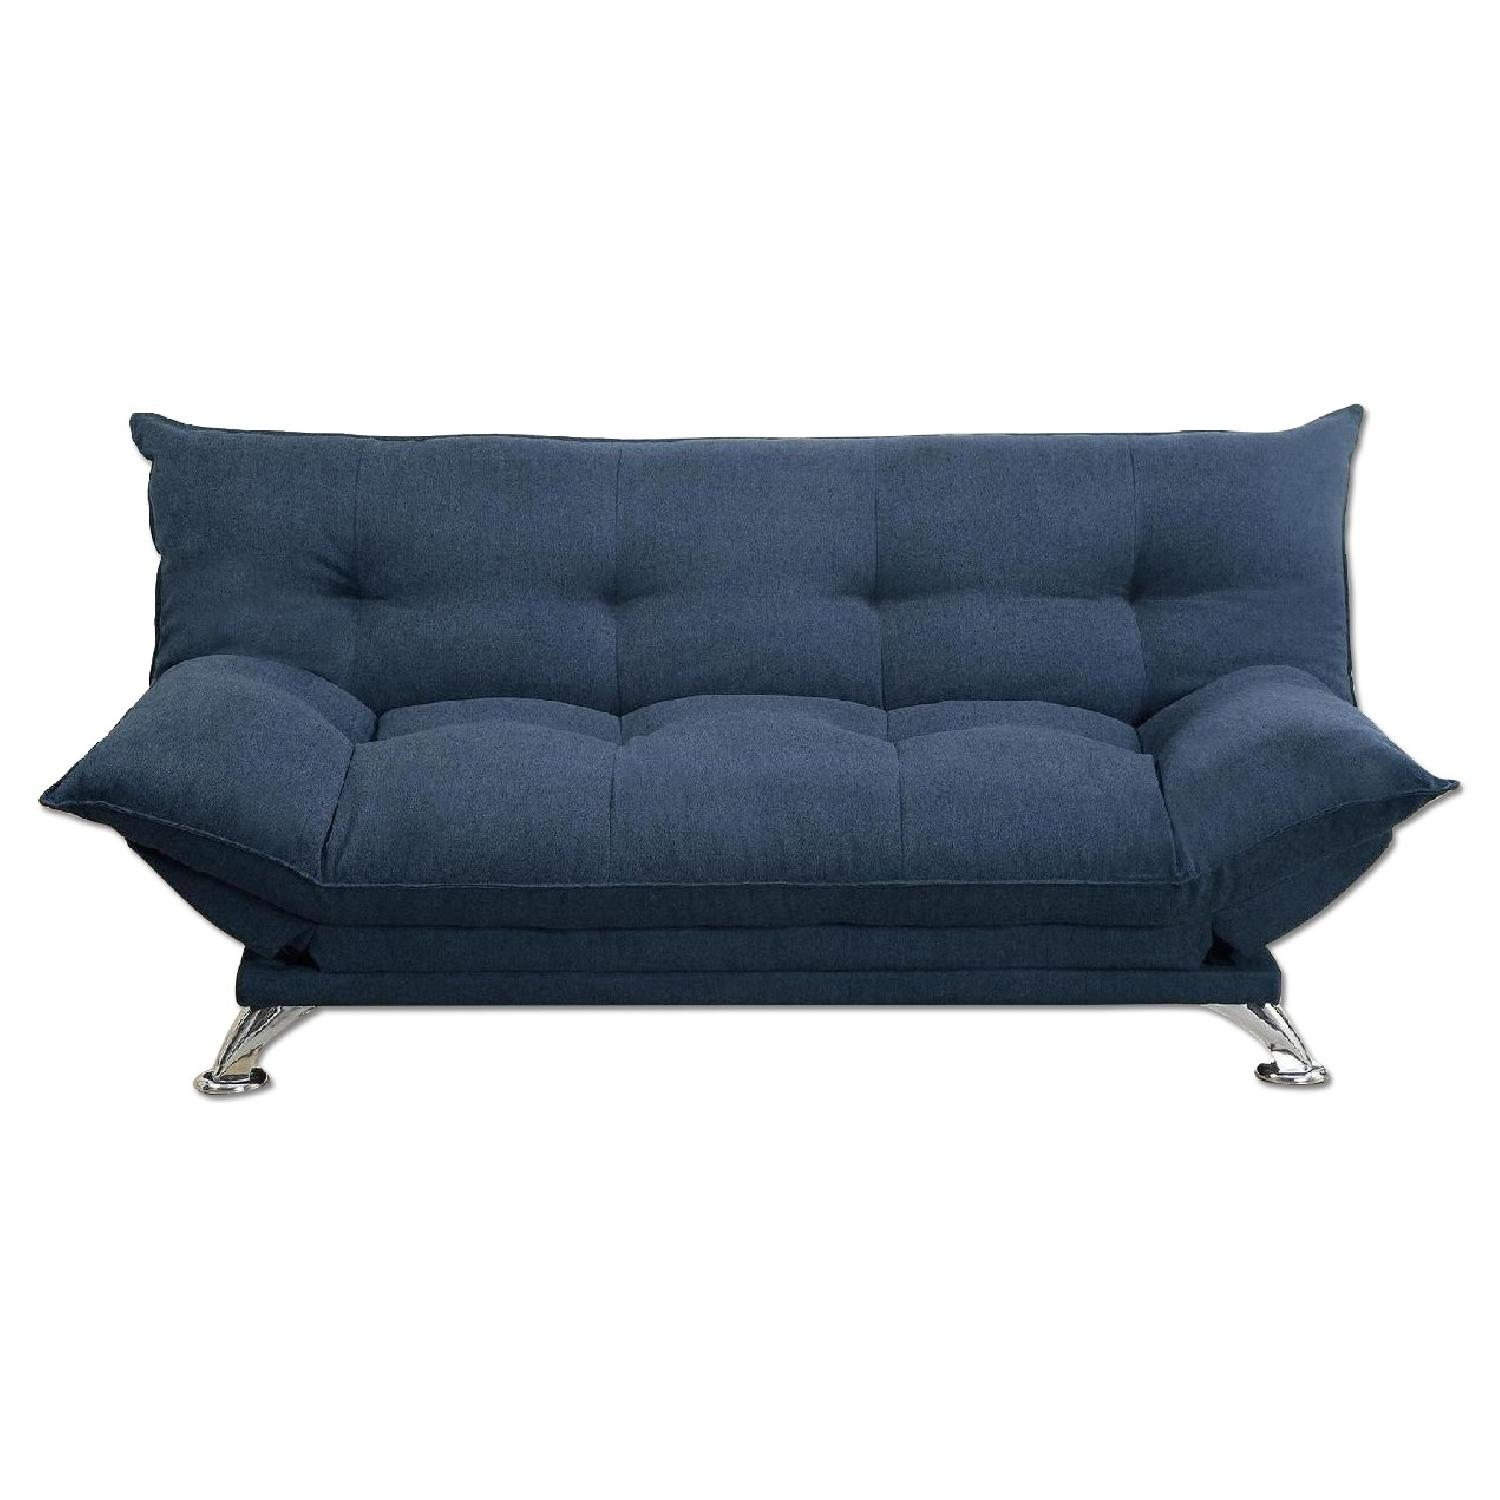 Navy Linen Like Fabric Sofa Bed